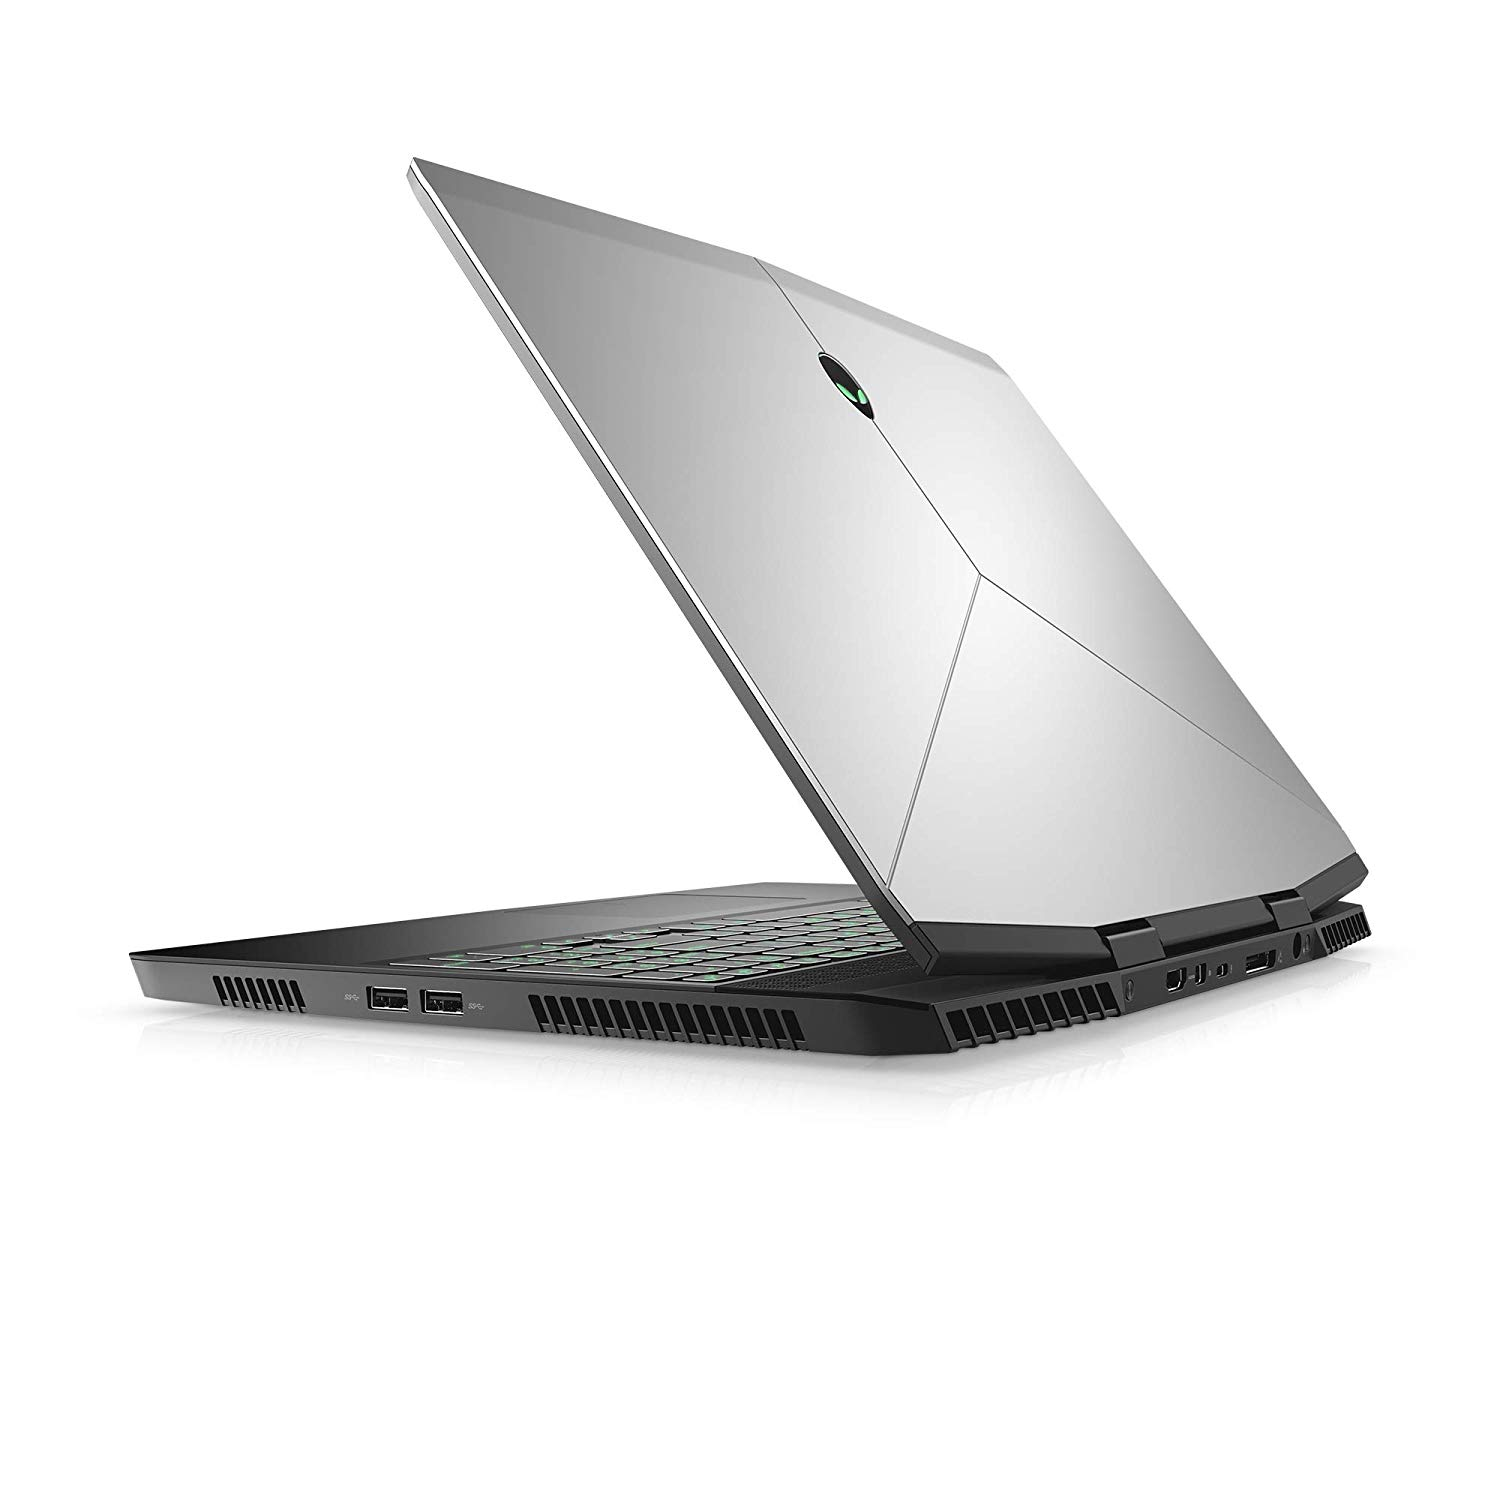 Alienware M15 Laptop for Gaming - Gaming Laptop